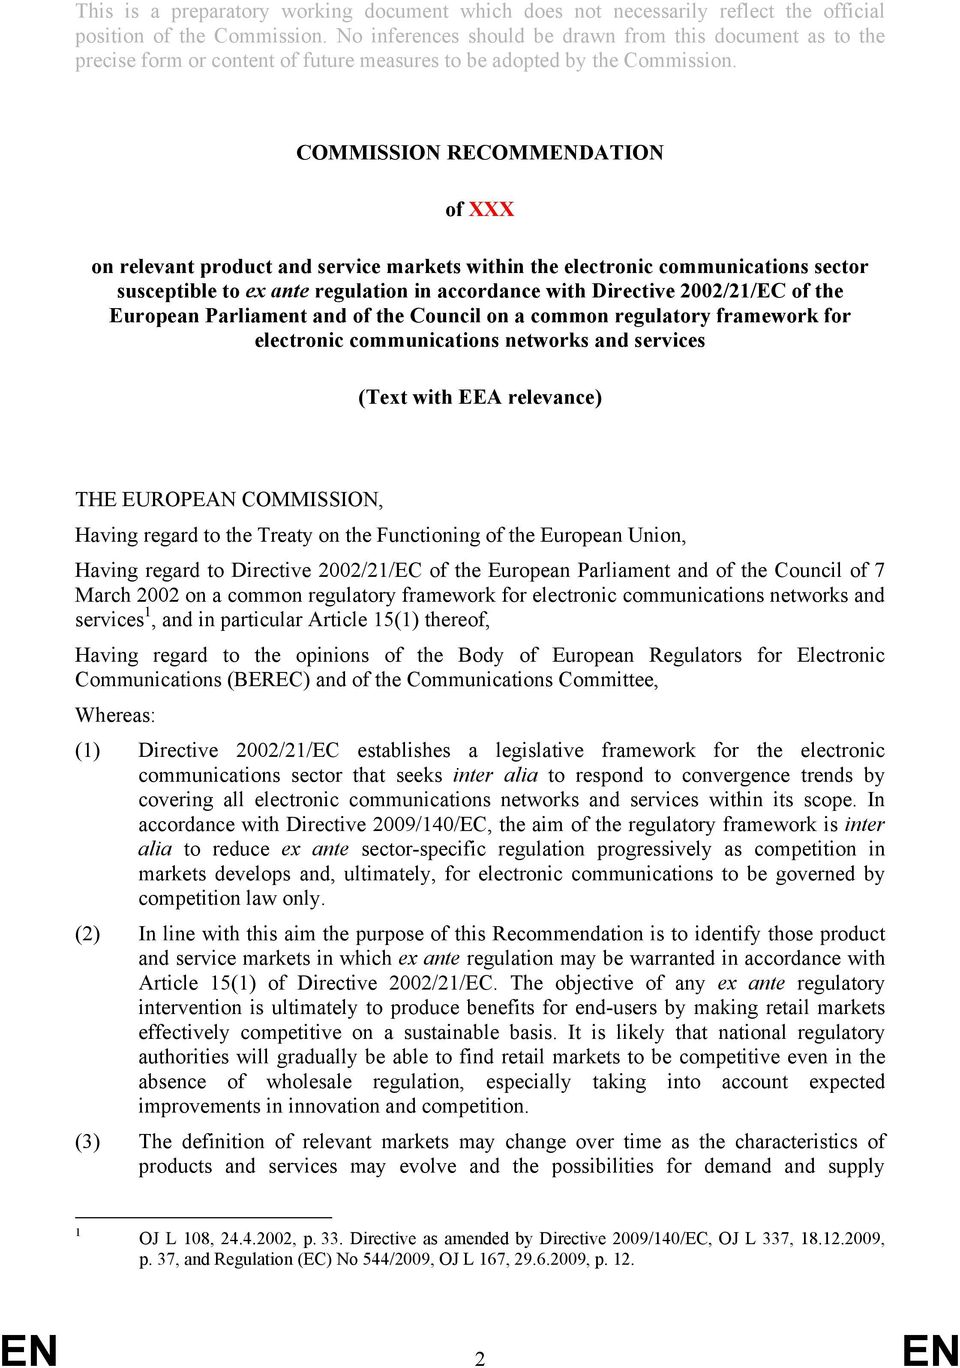 Treaty on the Functioning of the European Union, Having regard to Directive 2002/21/EC of the European Parliament and of the Council of 7 March 2002 on a common regulatory framework for electronic